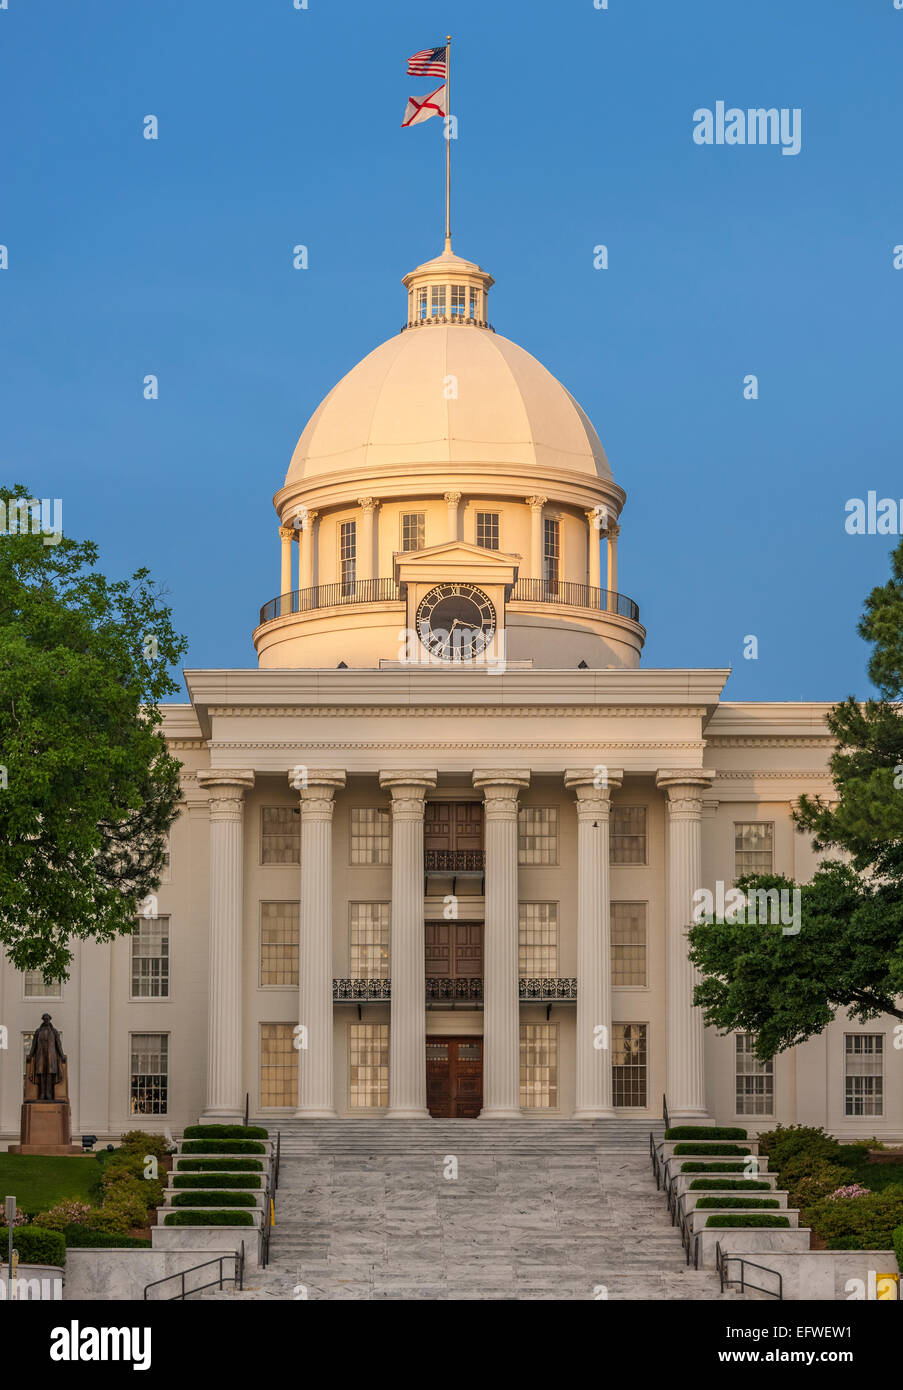 Montgomery Alabama State Capitol building - Stock Image